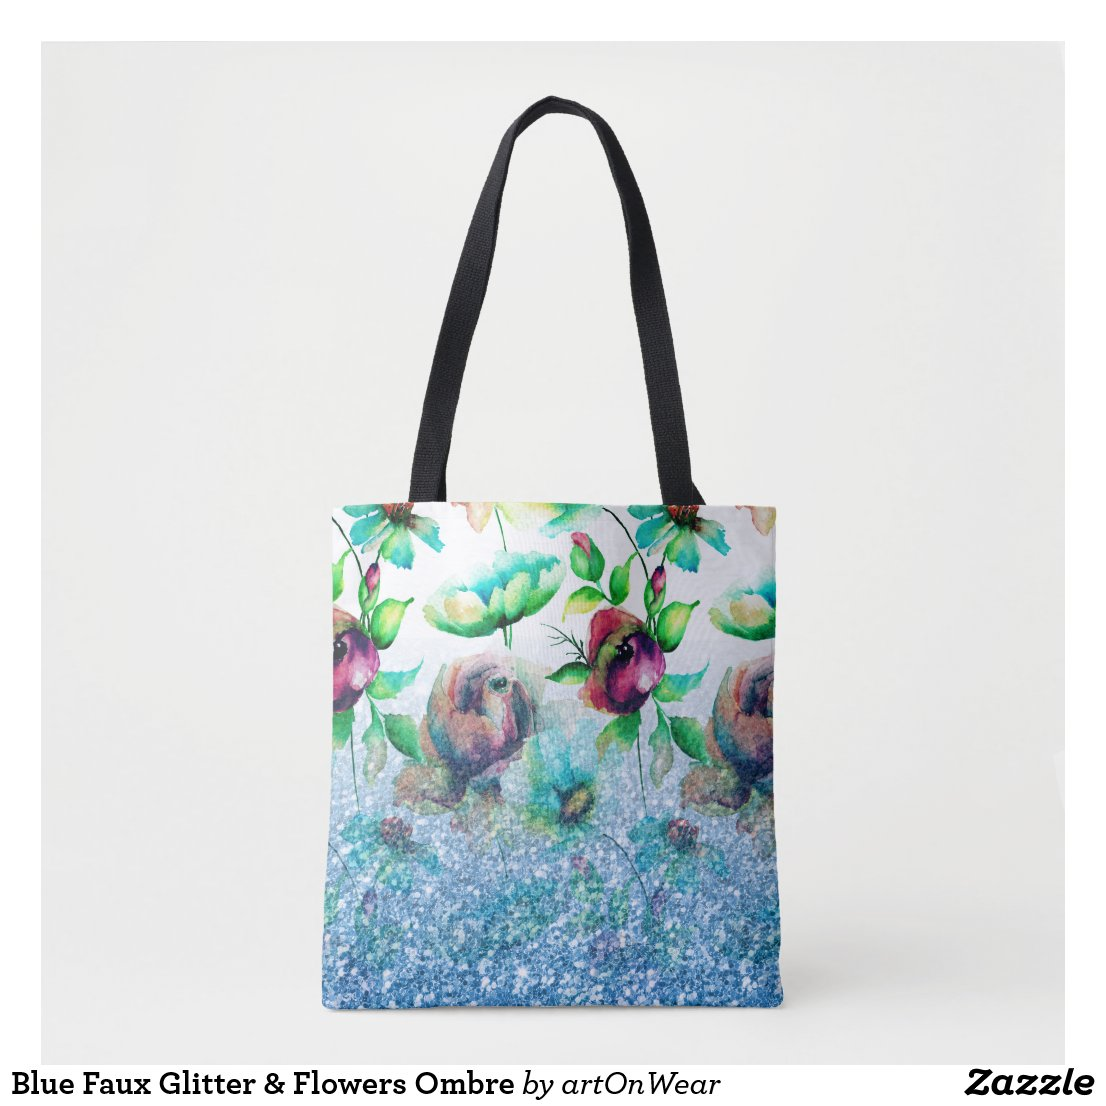 Blue Faux Glitter & Flowers Ombre Tote Bag